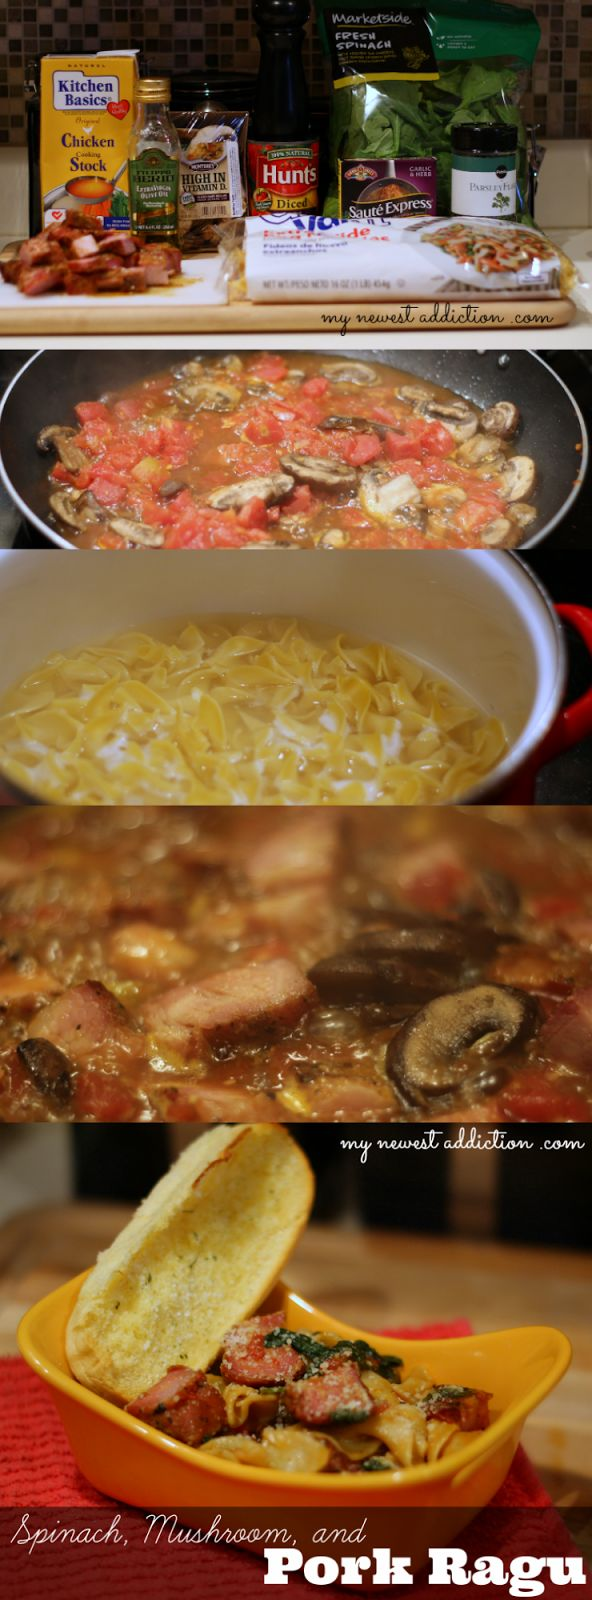 Spinach, Mushroom, and Pork Ragu Recipe, Upcycling Leftovers - My Newest Addiction Beauty Blog